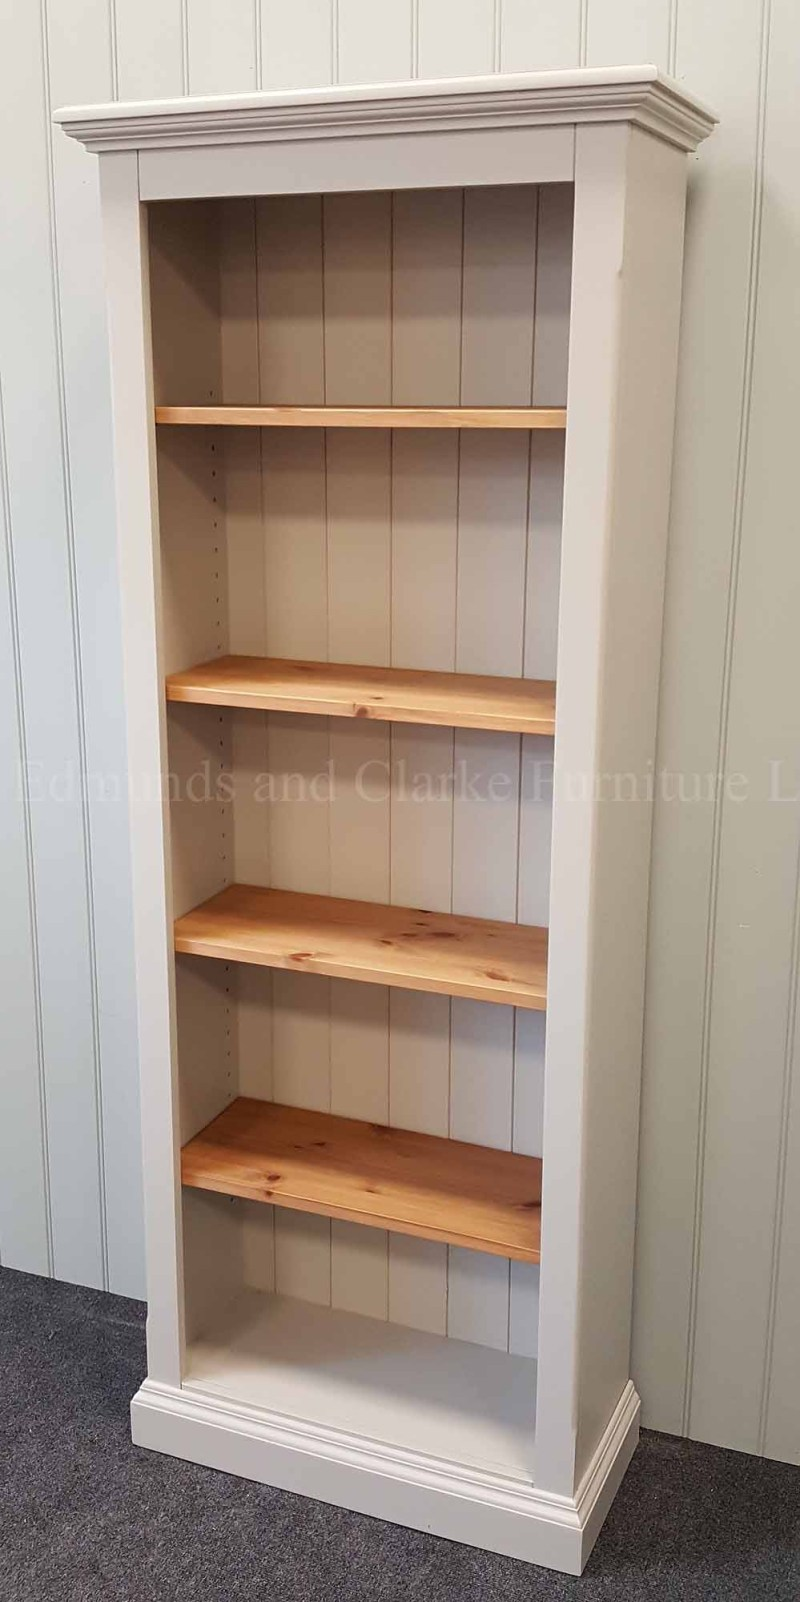 Painted bookcase with adjustable shelves